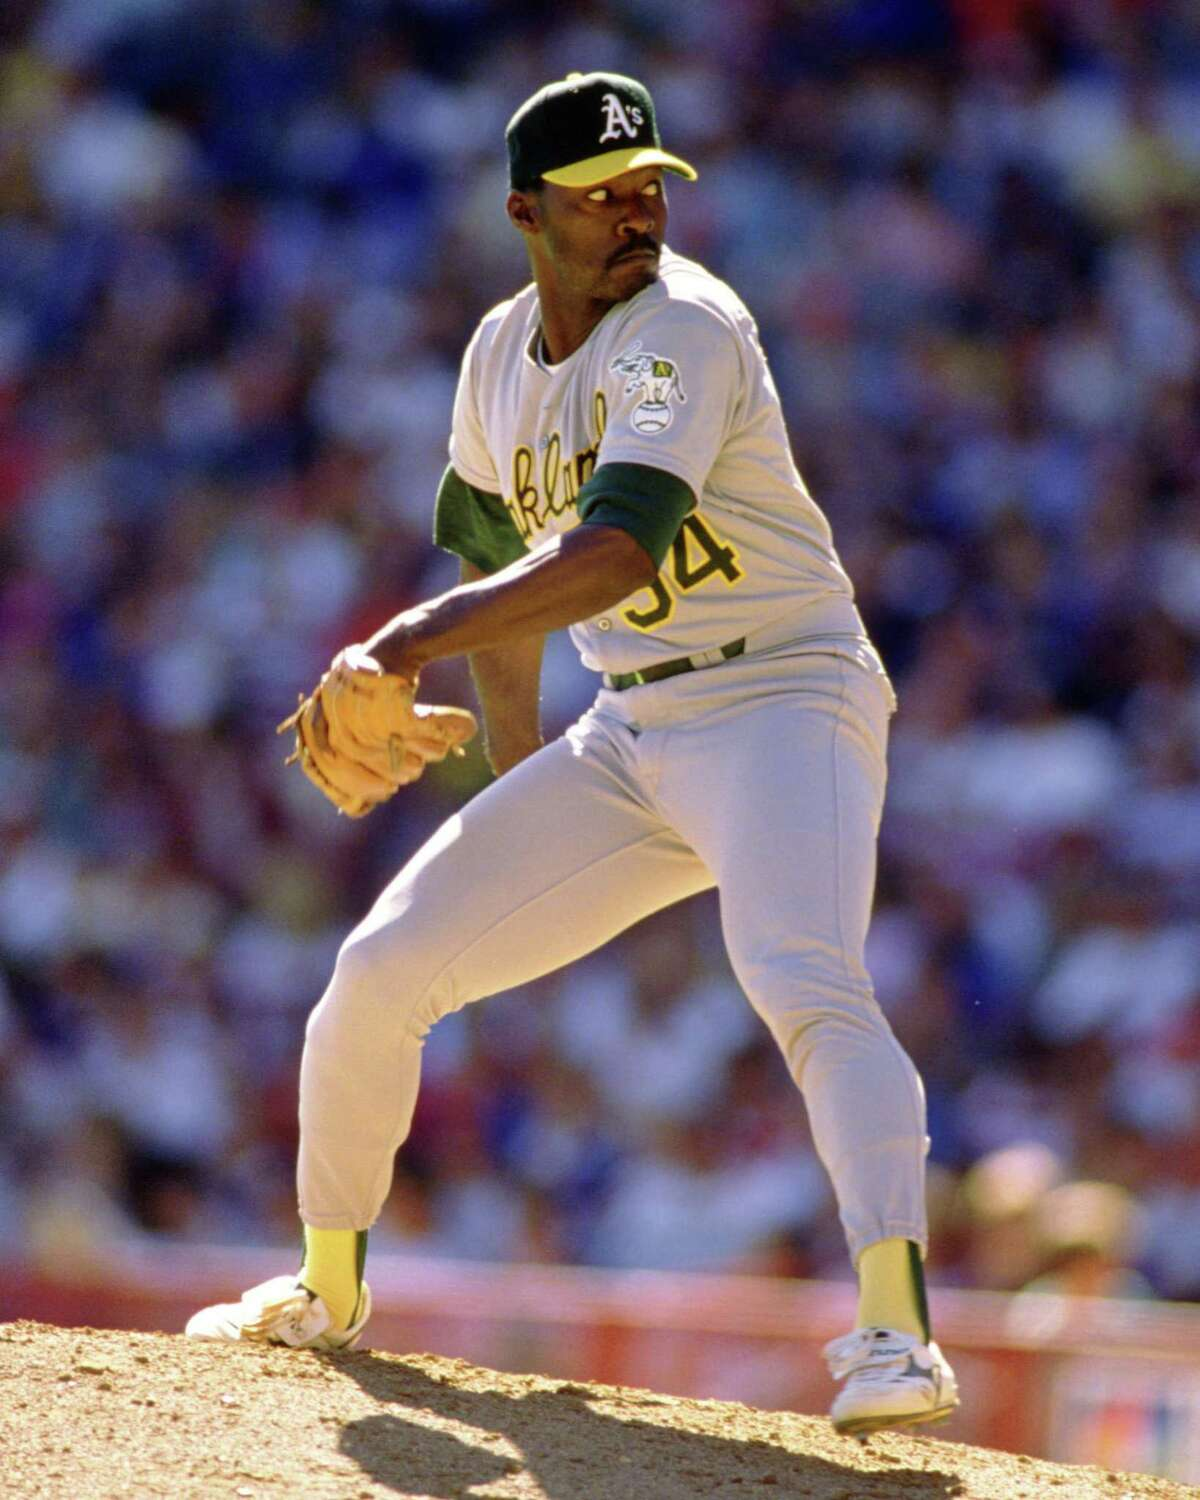 MILWAUKEE - 1988: Dave Stewart of the Oakland Athletics pitches during an MLB game versus the Milwaukee Brewers at County Stadium in Milwaukee, Wisconsin during the 1988 season. (Photo by Ron Vesely/MLB Photos via Getty Images)